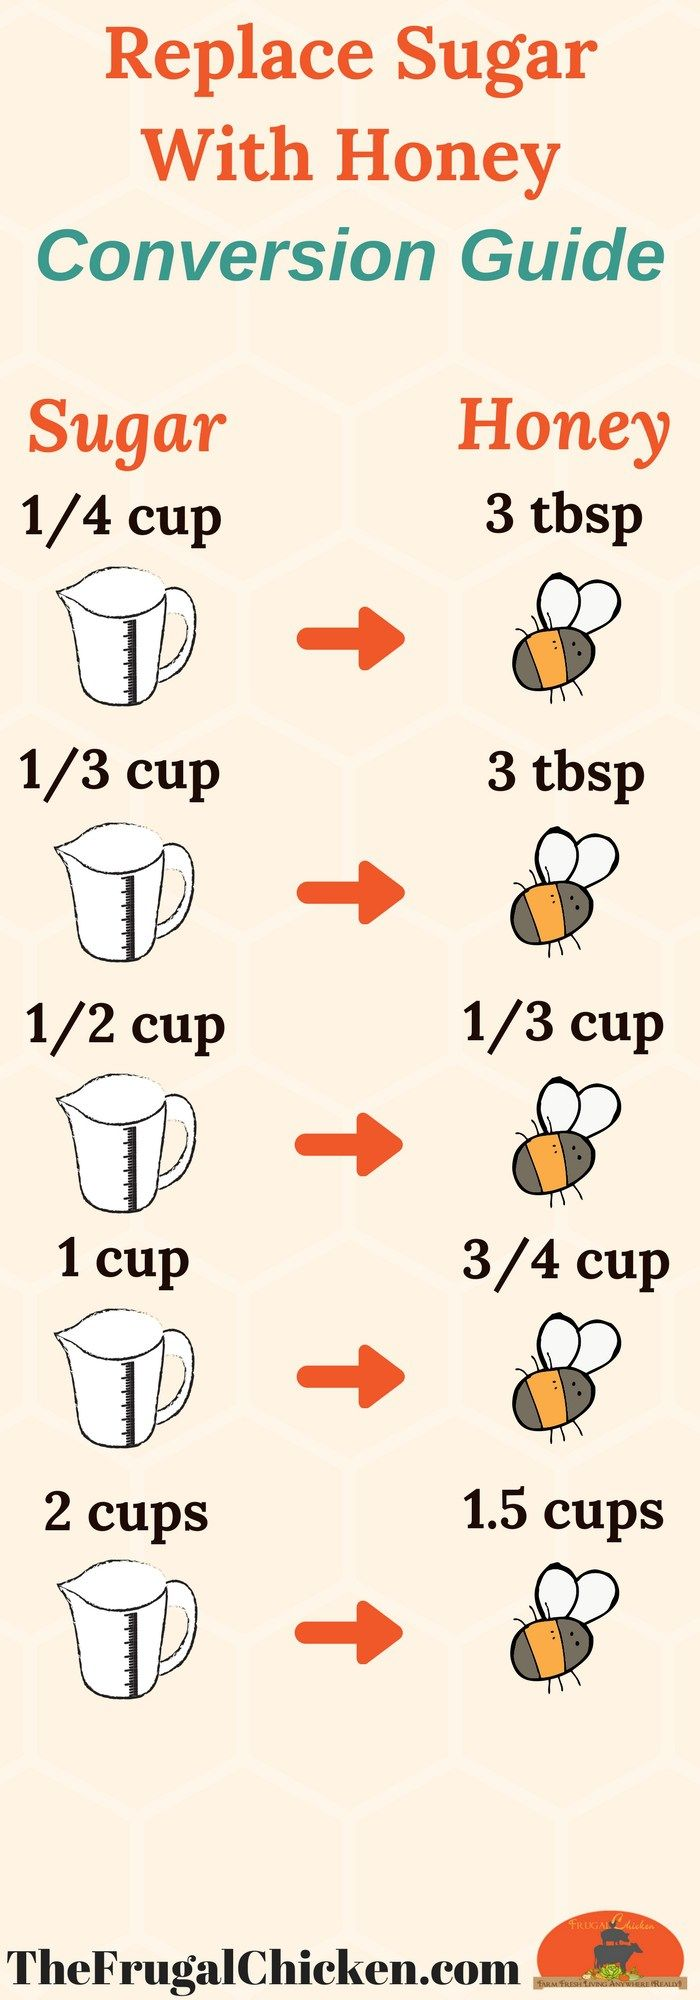 Get rid of the refined sugar & use honey in your best baking recipes instead! You also need to use baking soda, so click through to the article so you know how much to use!